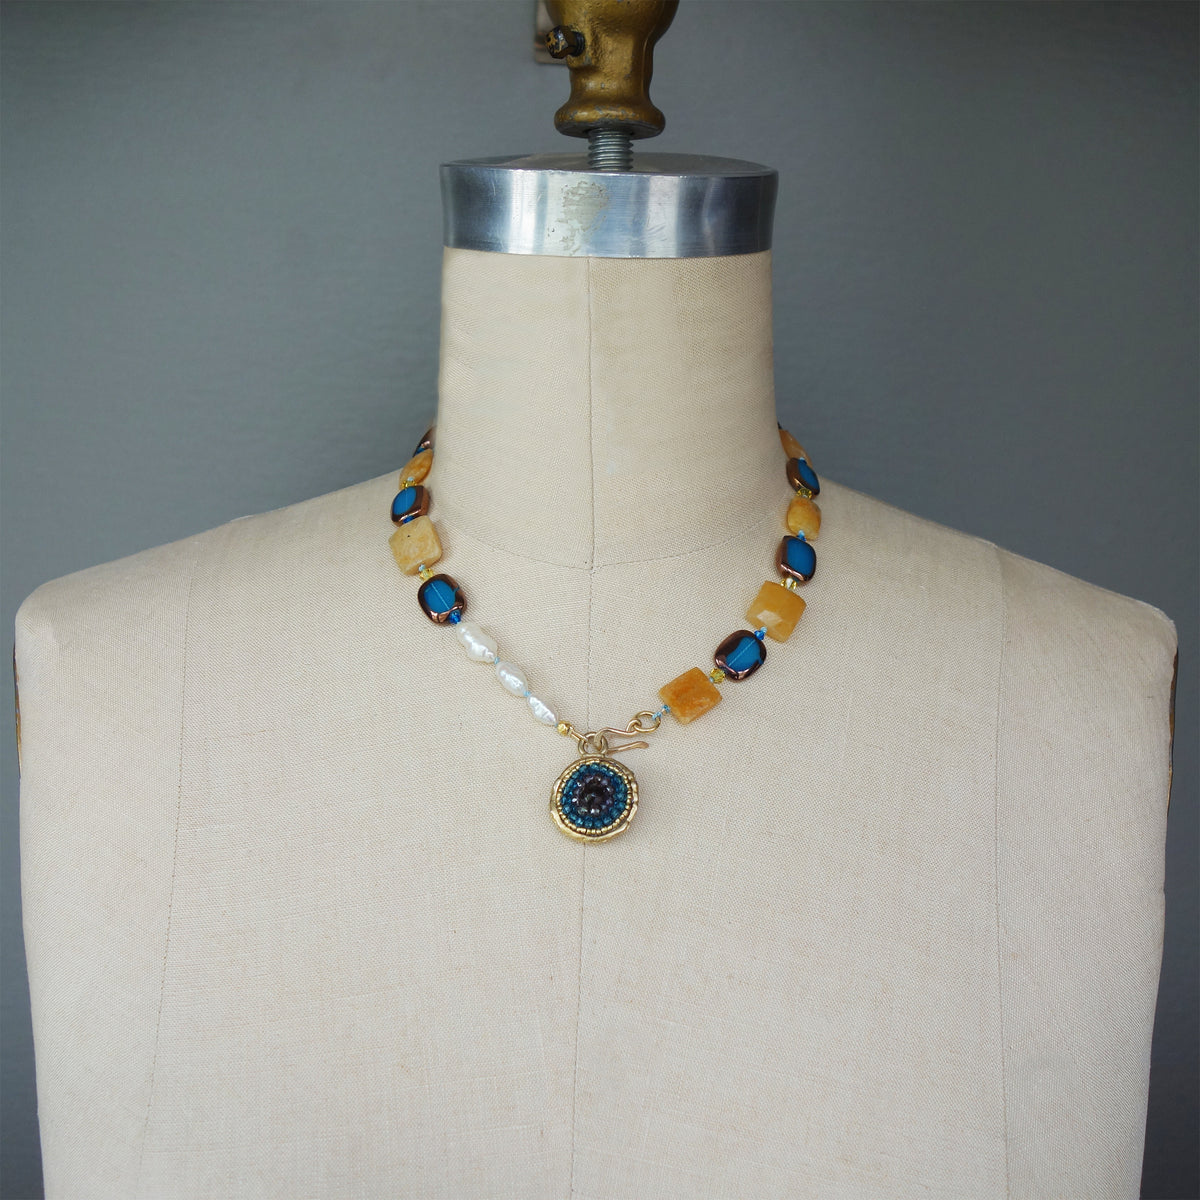 Sapphire, Pearl, and Jasper 2 Sided Mosaic Necklace (Wanderlust Paris)